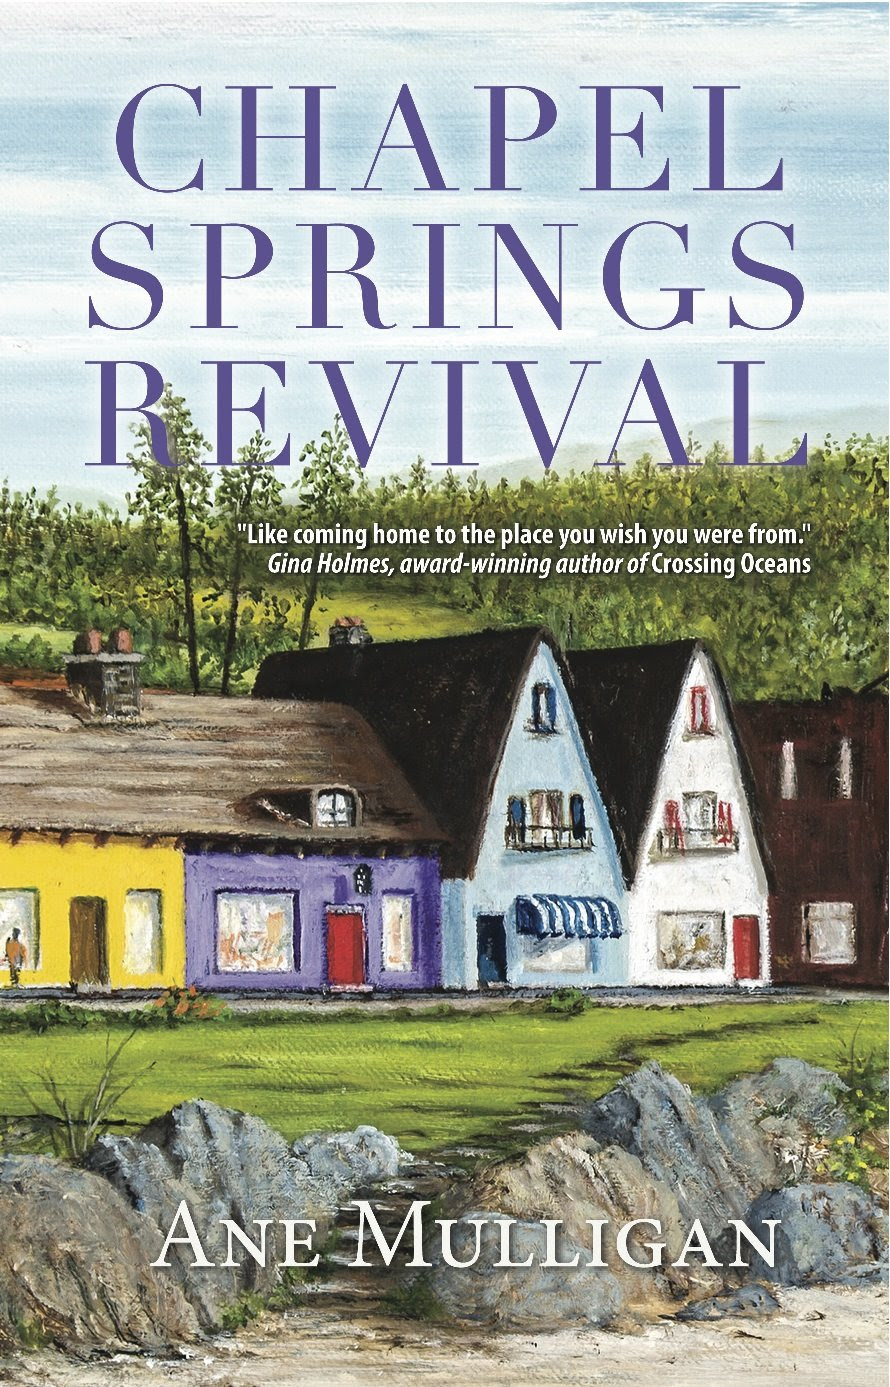 http://www.amazon.com/Springs-Revival-Contemporary-Christian-Romance-ebook/dp/B00NC0LEN2/ref=asap_B00L3SDPDC_1_1?s=books&ie=UTF8&qid=1416243905&sr=1-1